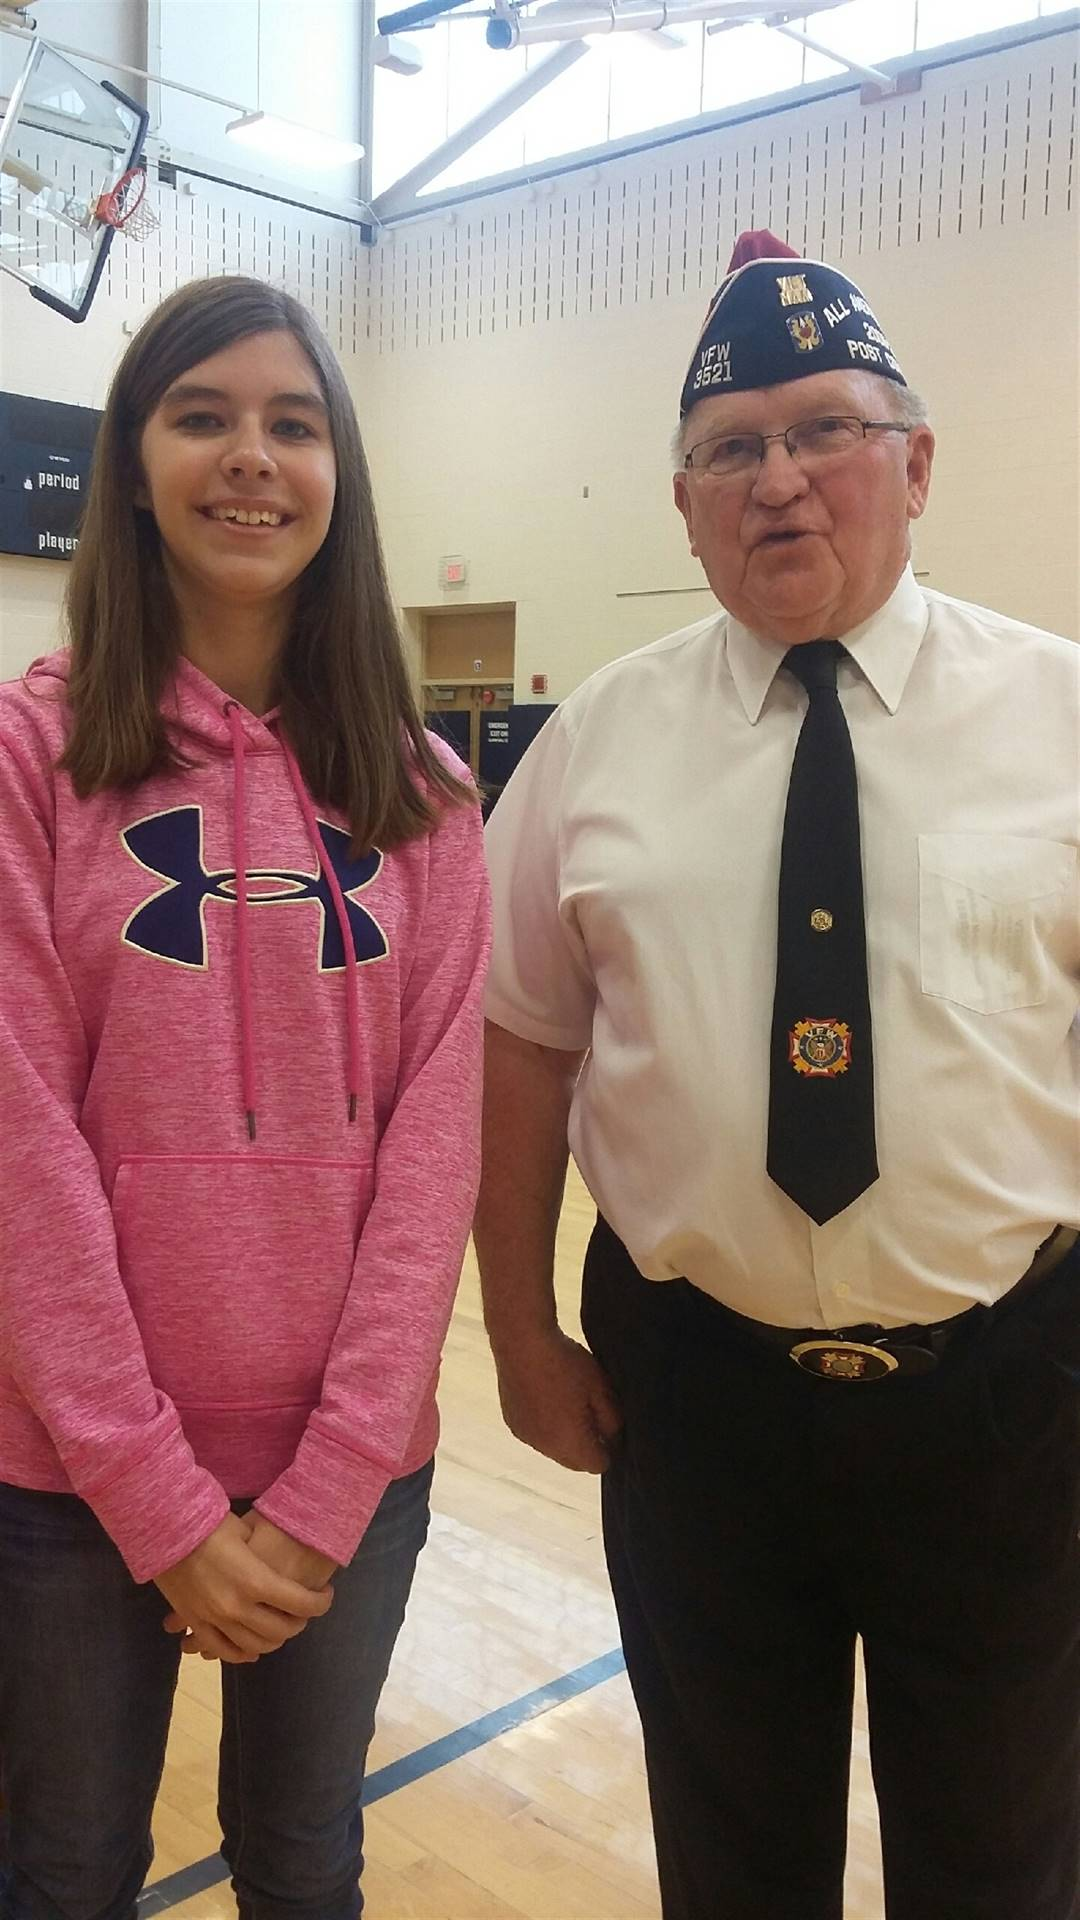 Hannah McNamara with Jeff Dreves from Vienna VFW during Memorial Day Assembly